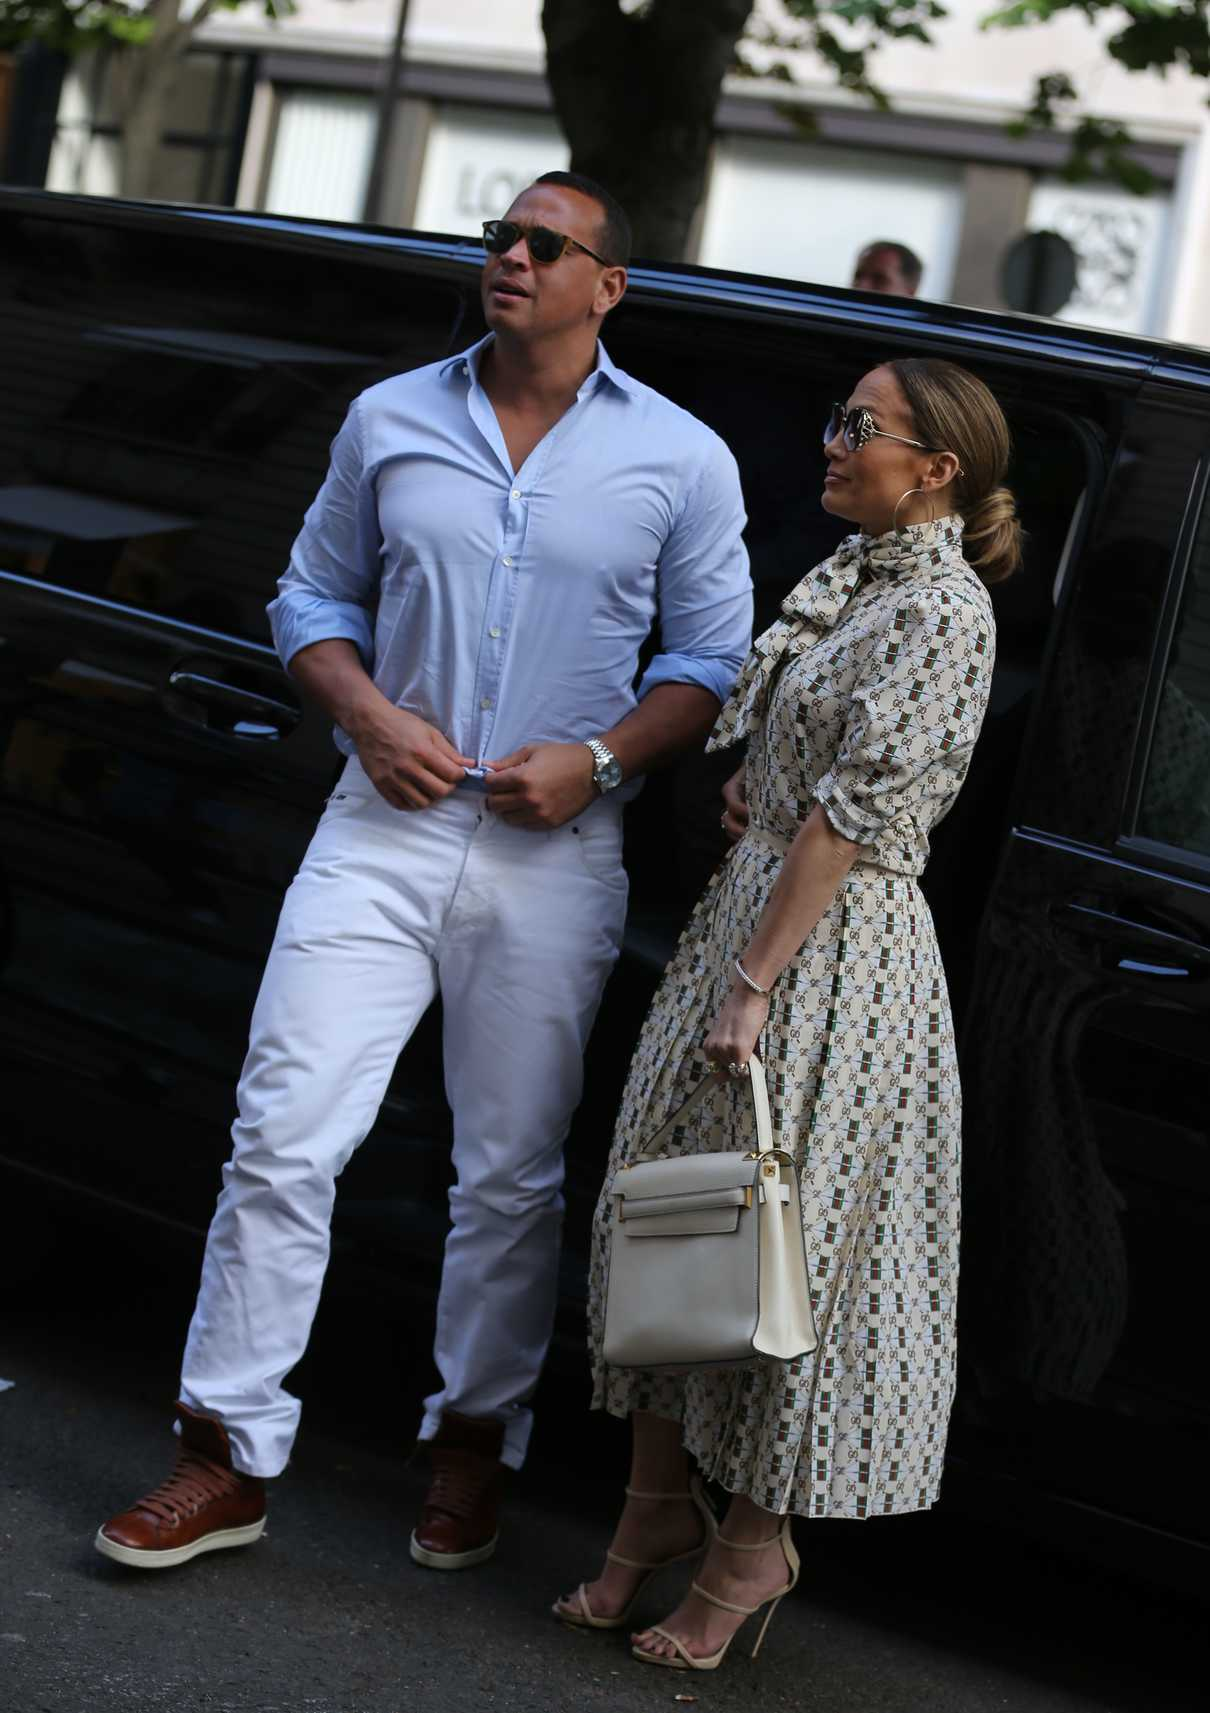 Jennifer Lopez Visits the Louvre in Paris With Her Boyfriend Alex Rodriguez 06/17/2017-3